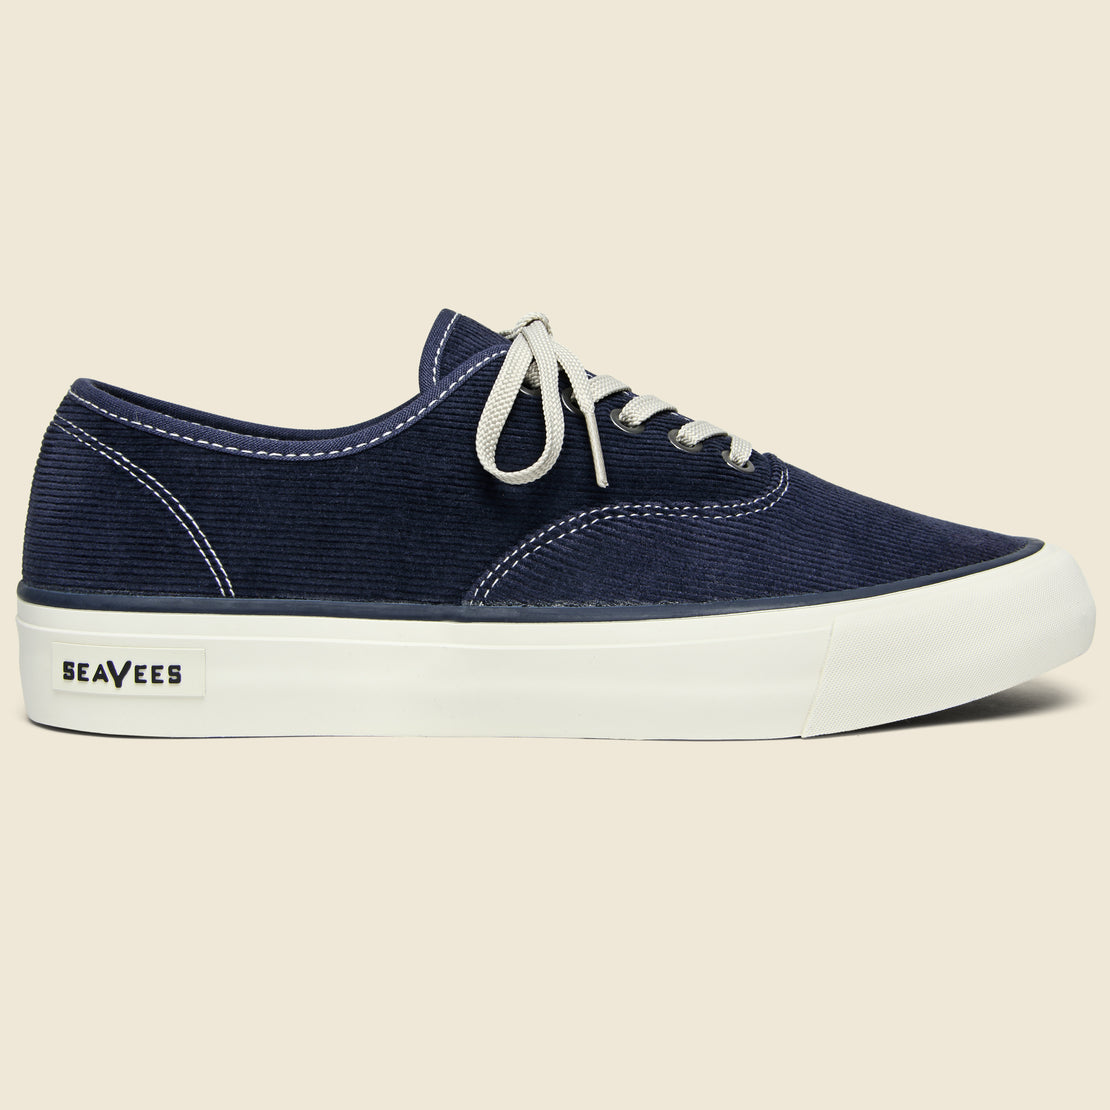 Seavees Legend Cordies - Navy